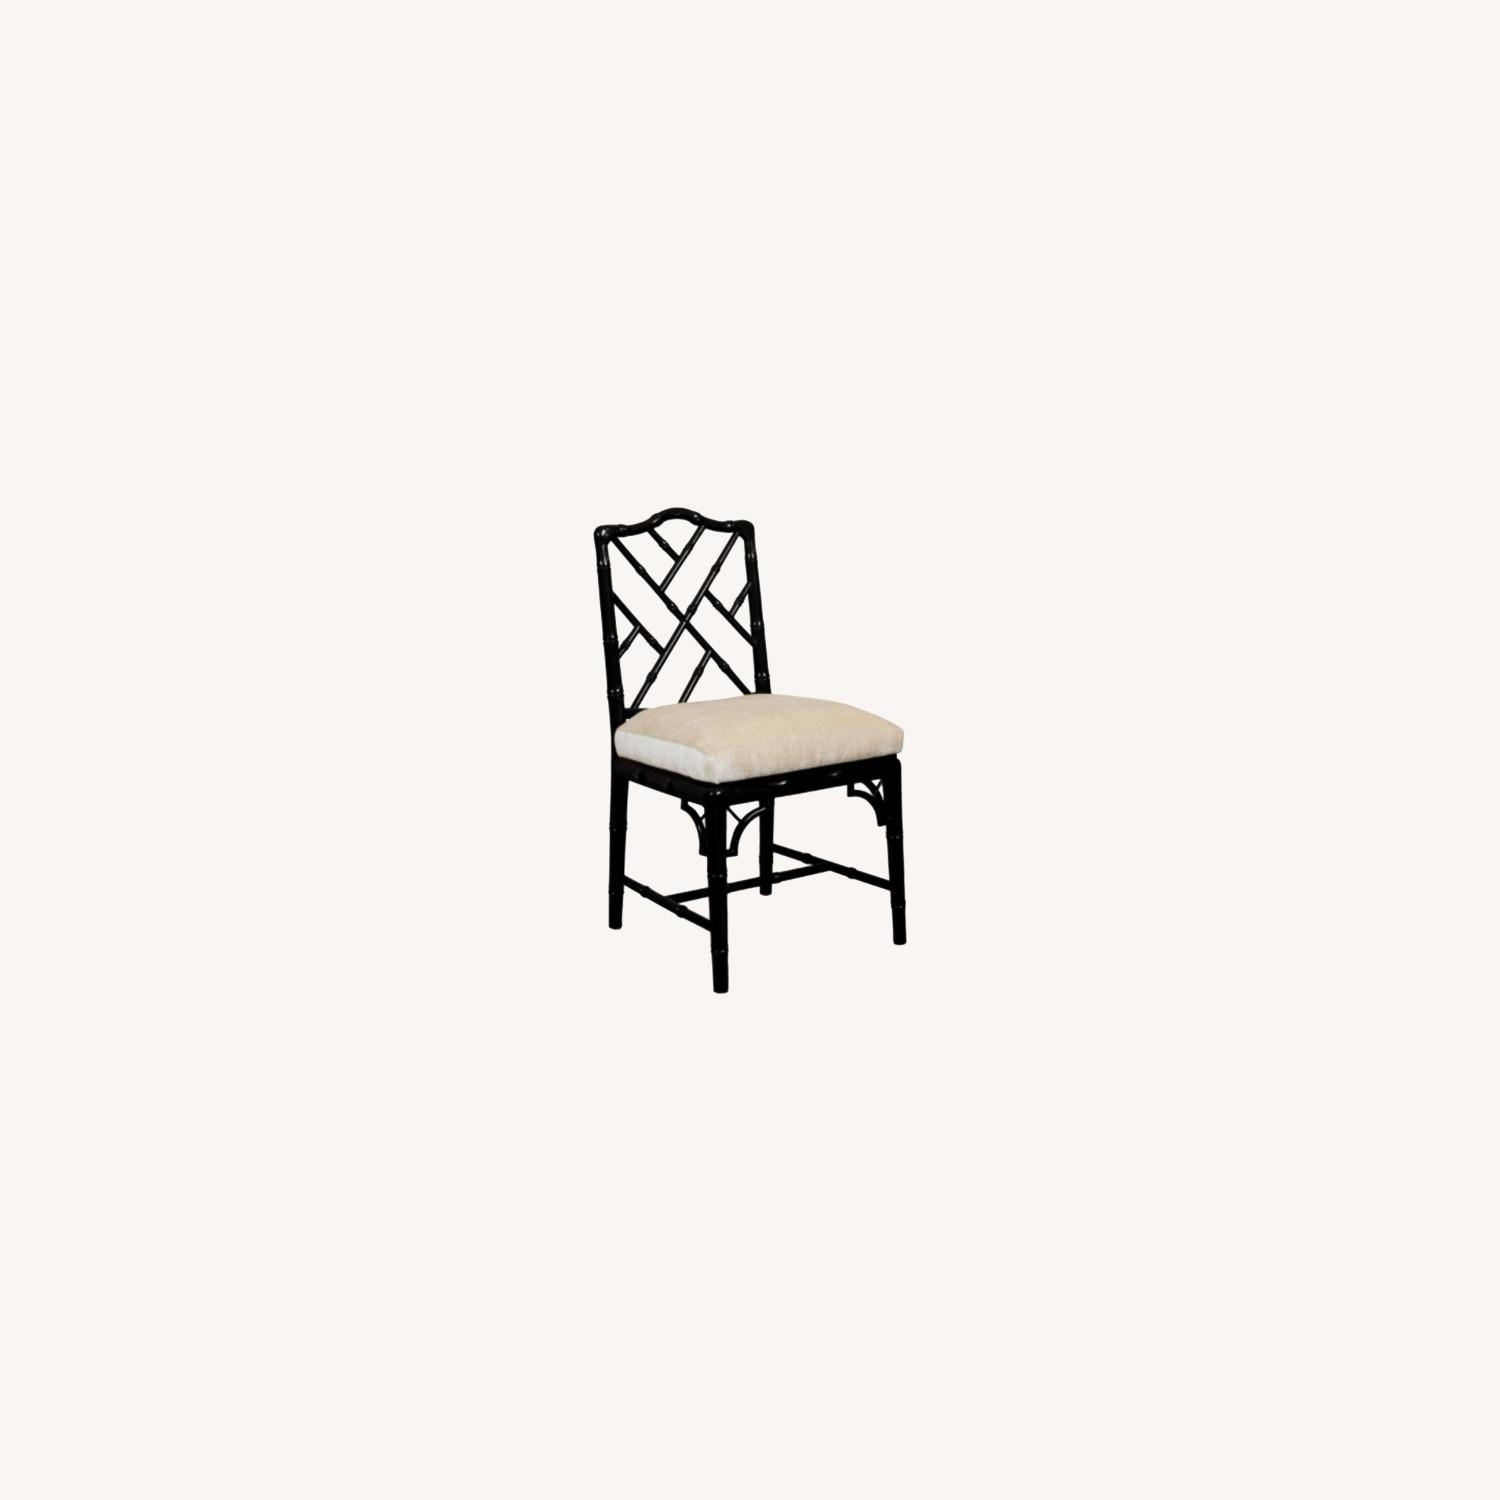 Jonathan Adler Black Lacquer Chippendale Chair - image-0